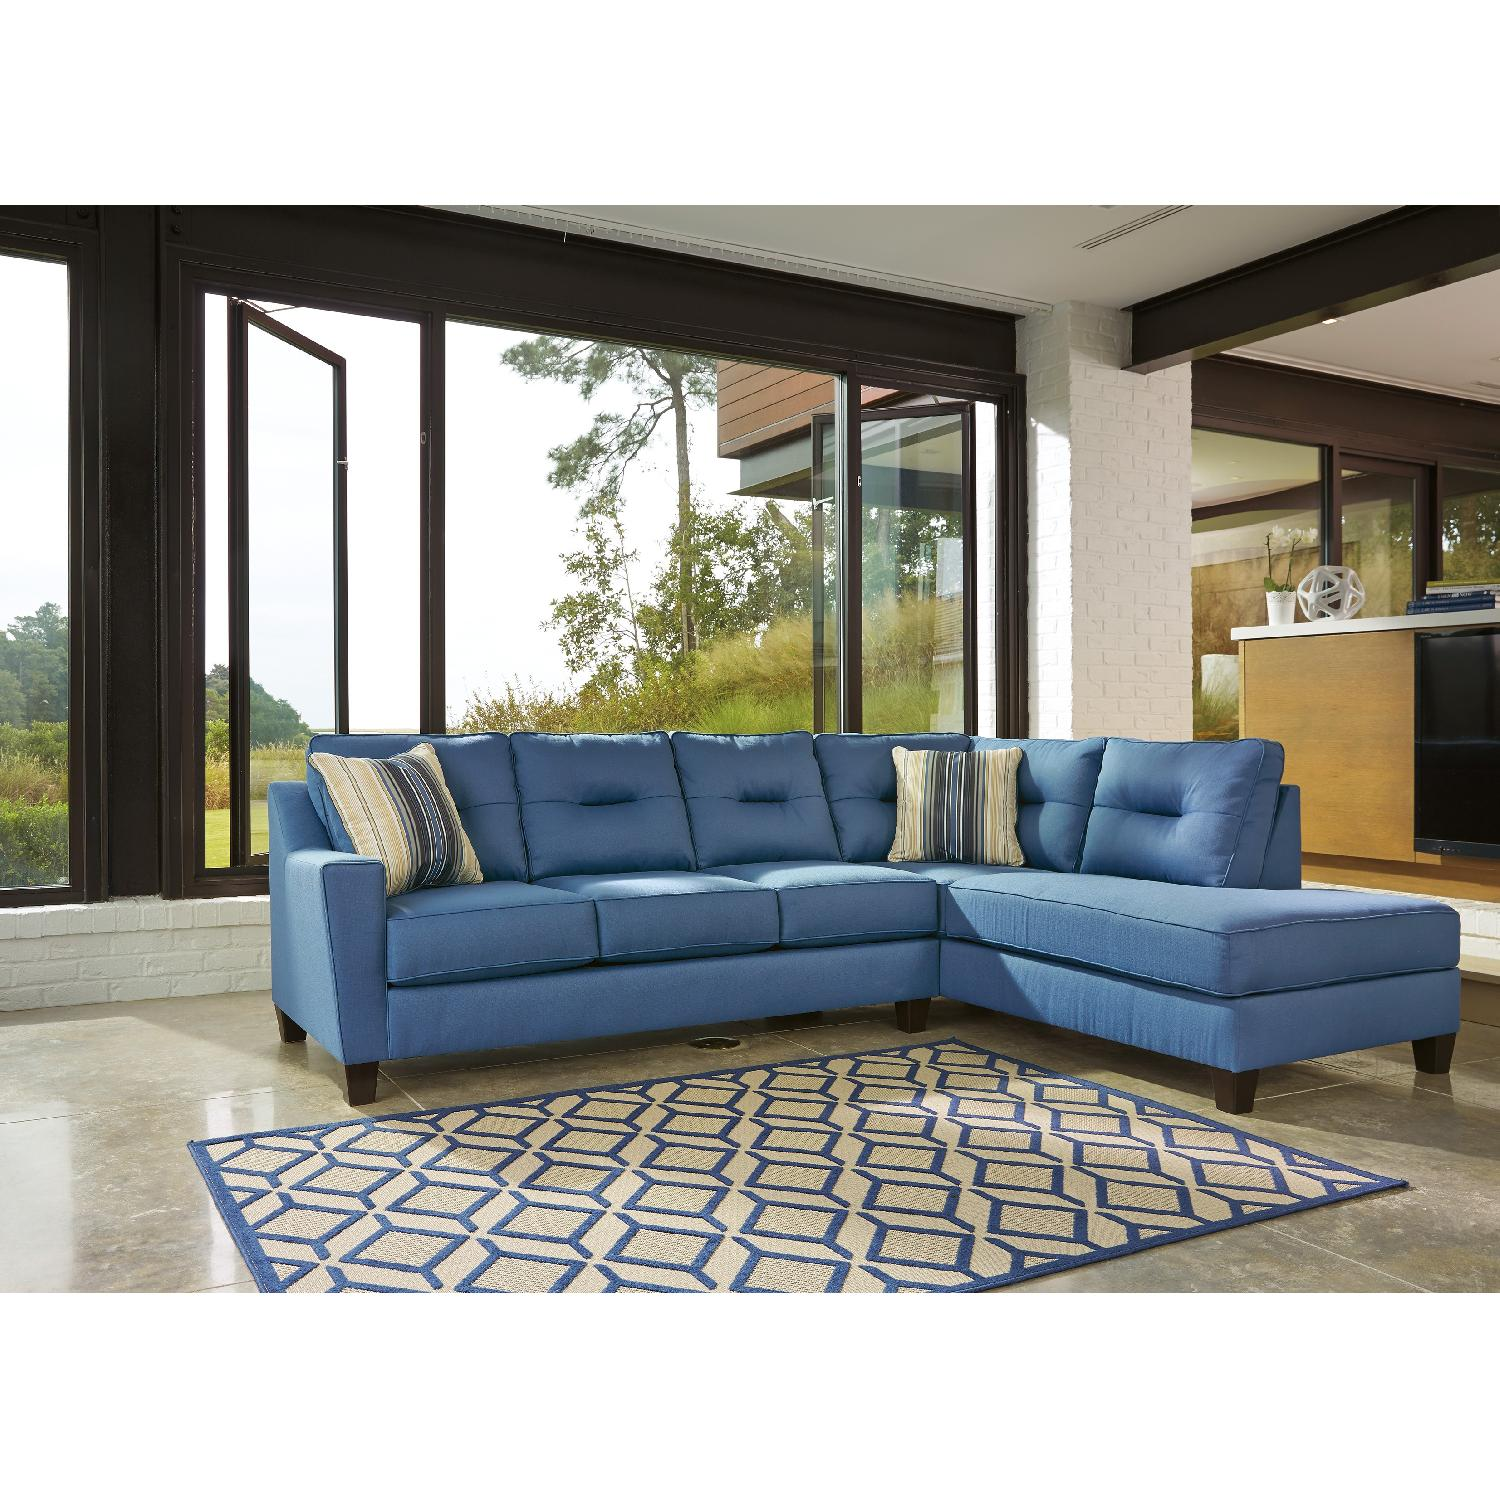 Ashley Kirwin Nuvella Contemporary 2 Piece Sectional in Blue